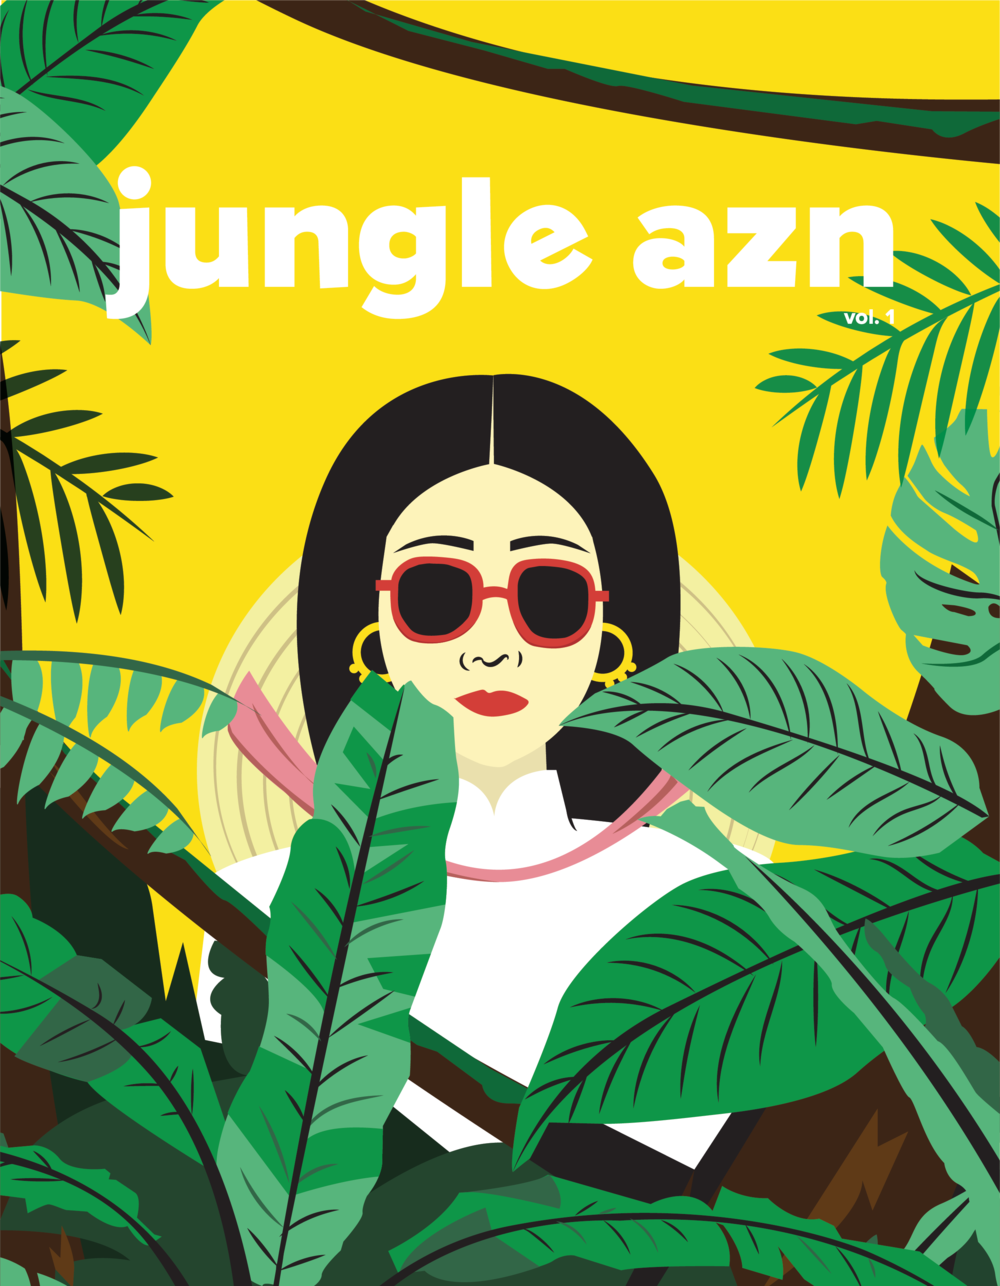 jungle azn cover-01.png